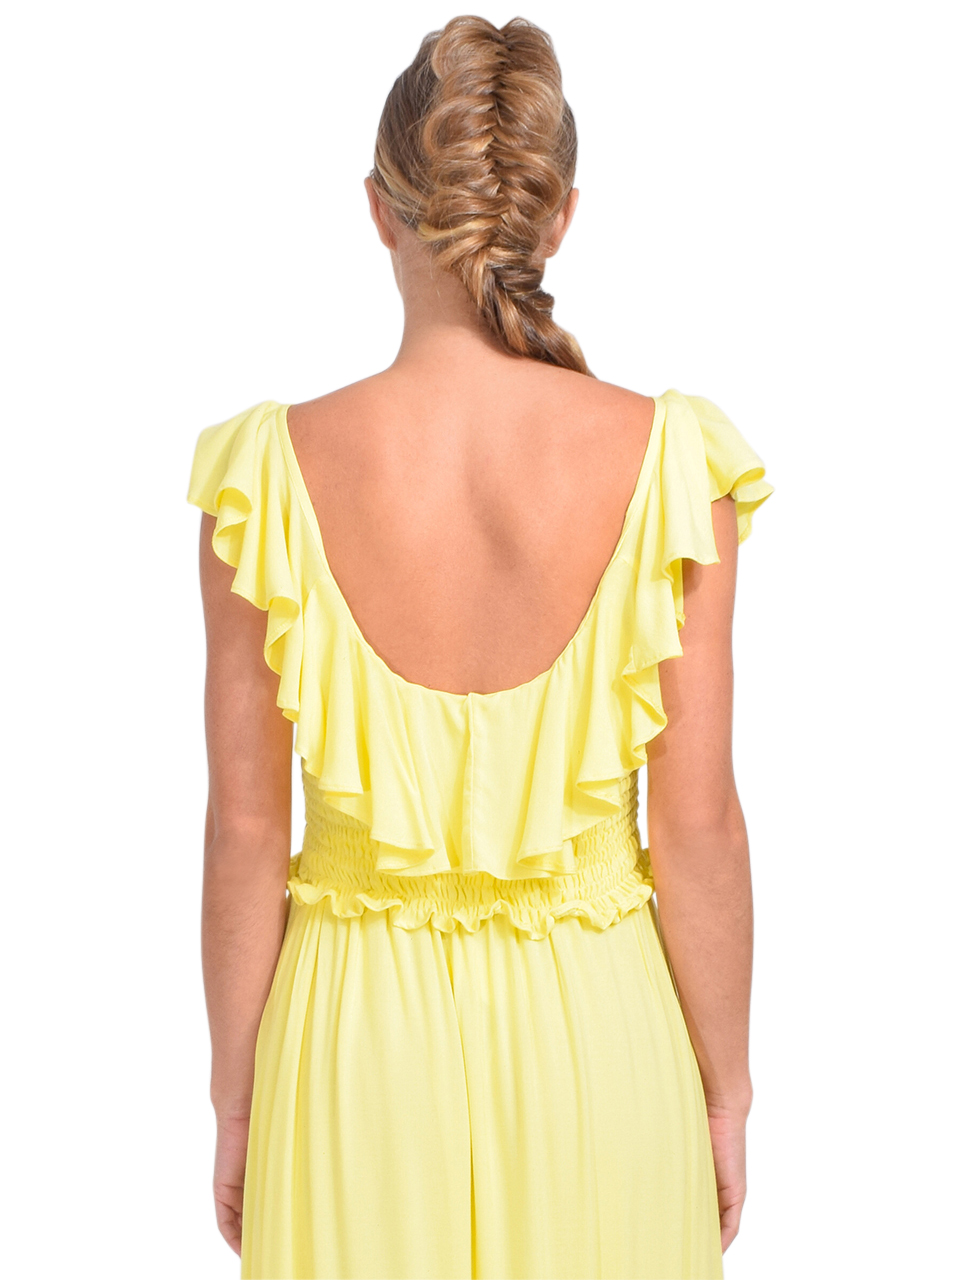 KASIA Sifnos Crop Top in Yellow Back View 1